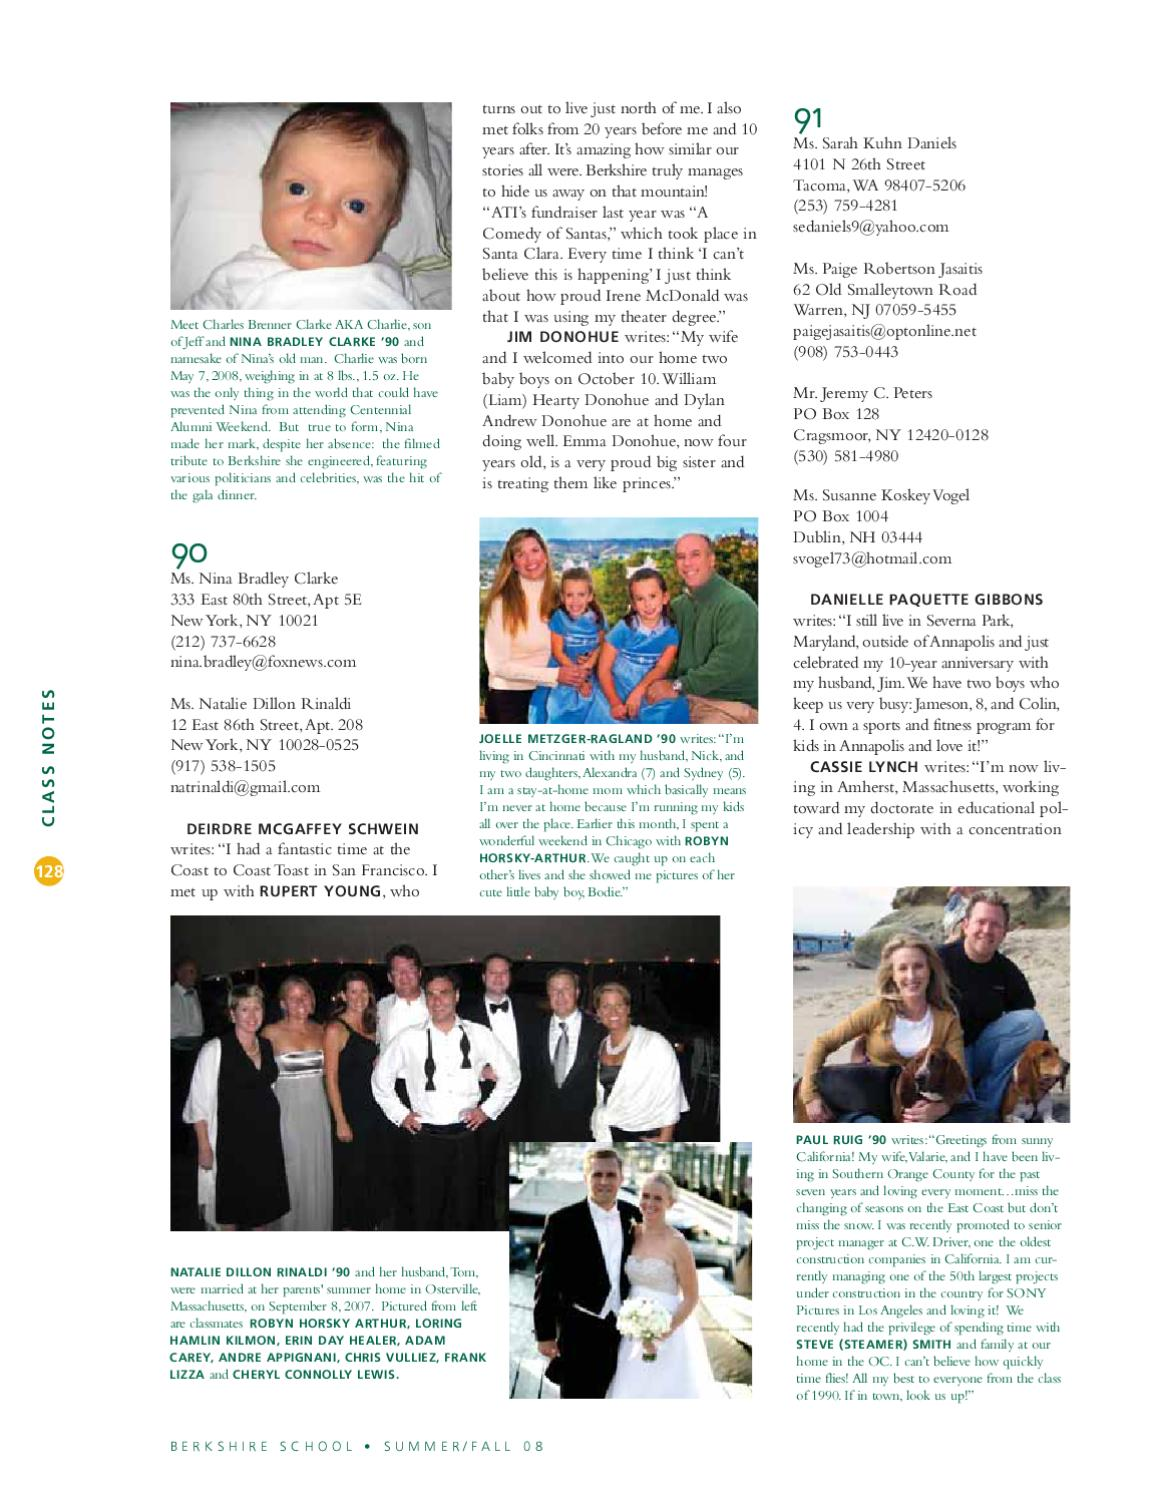 Berkshire Bulletin Fall 2008 by Berkshire School Alumni - issuu